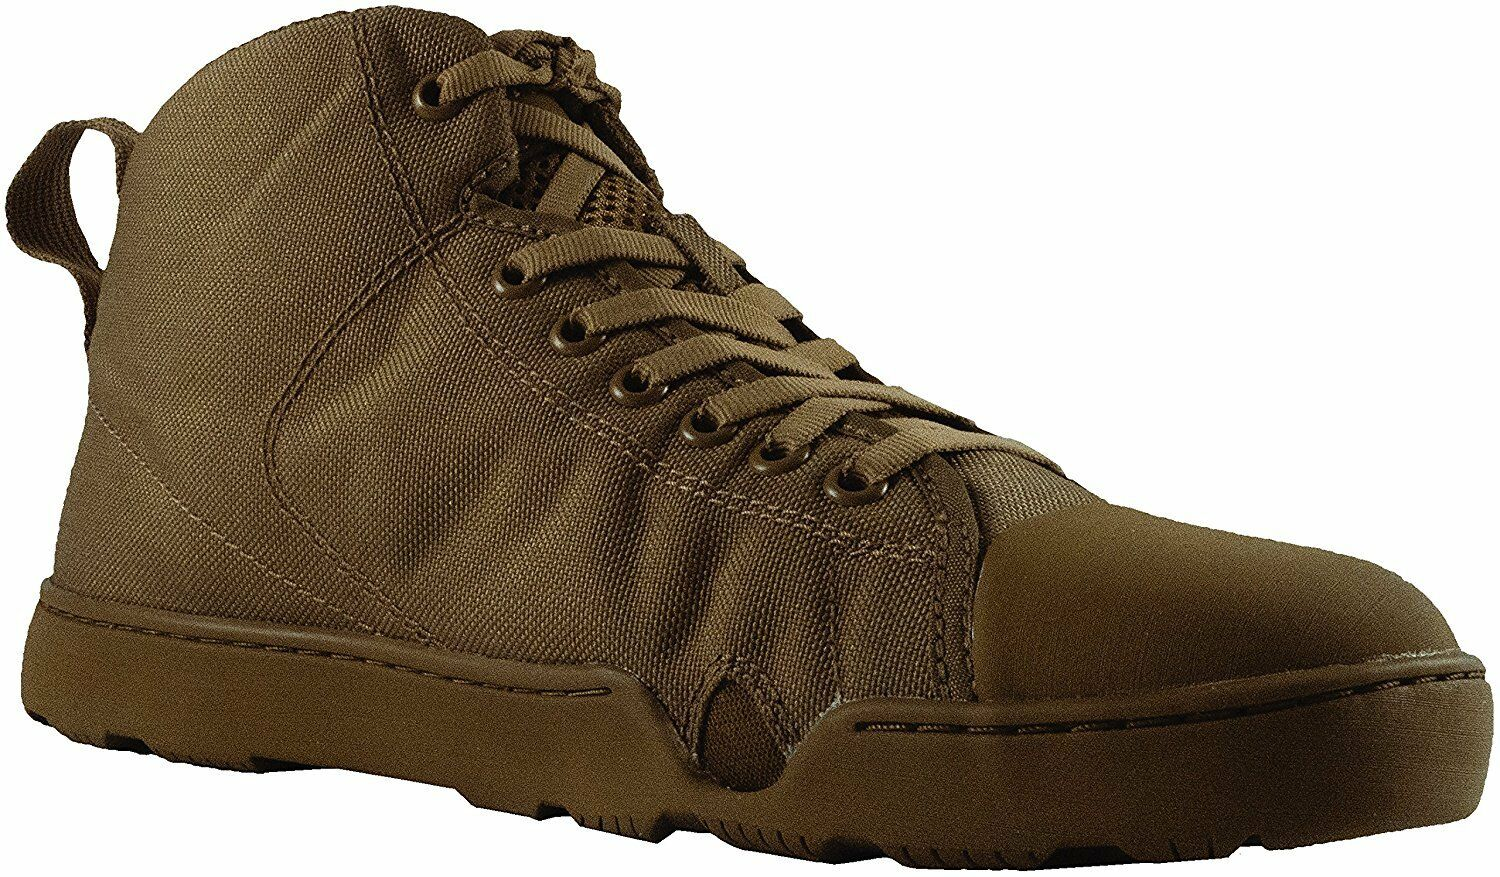 Altama OTB 333003 Maritime Assault Fin  Friendly Operator Boots - Mid Top, Coyote  incentive promotionals